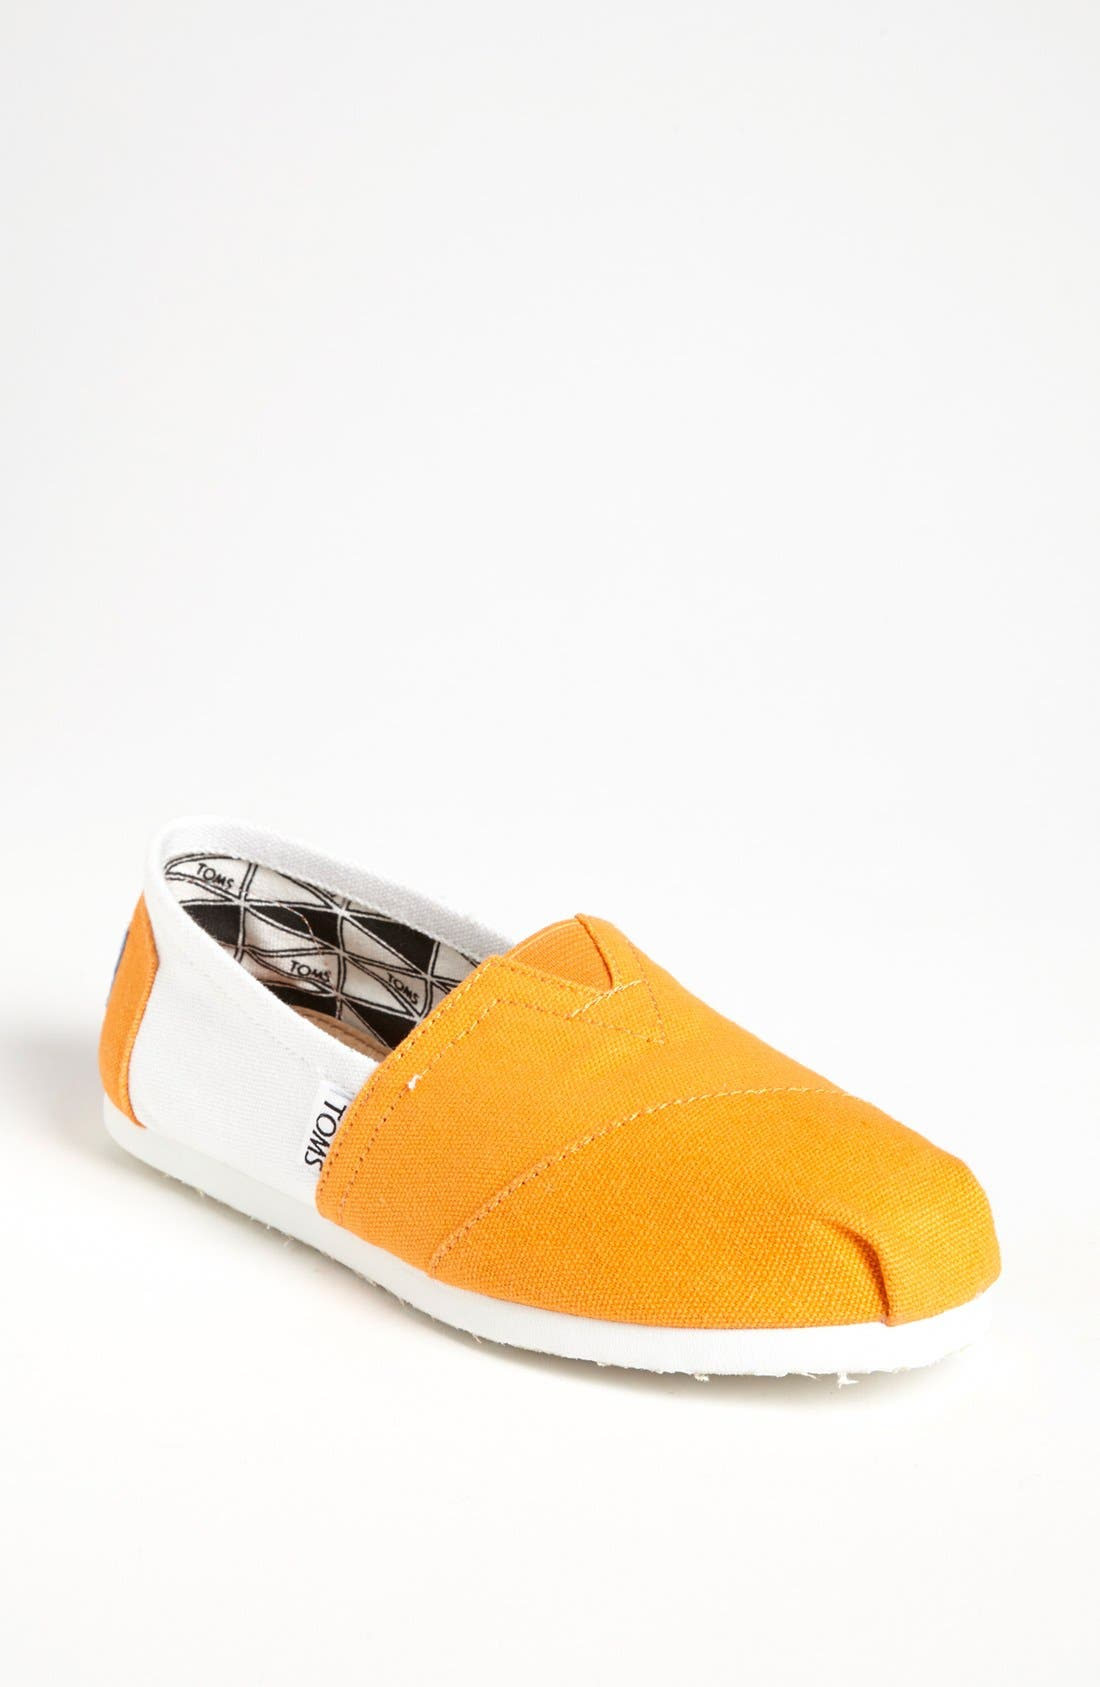 Alternate Image 1 Selected - TOMS 'Campus Classics - U of Tennessee' Slip-On (Women)